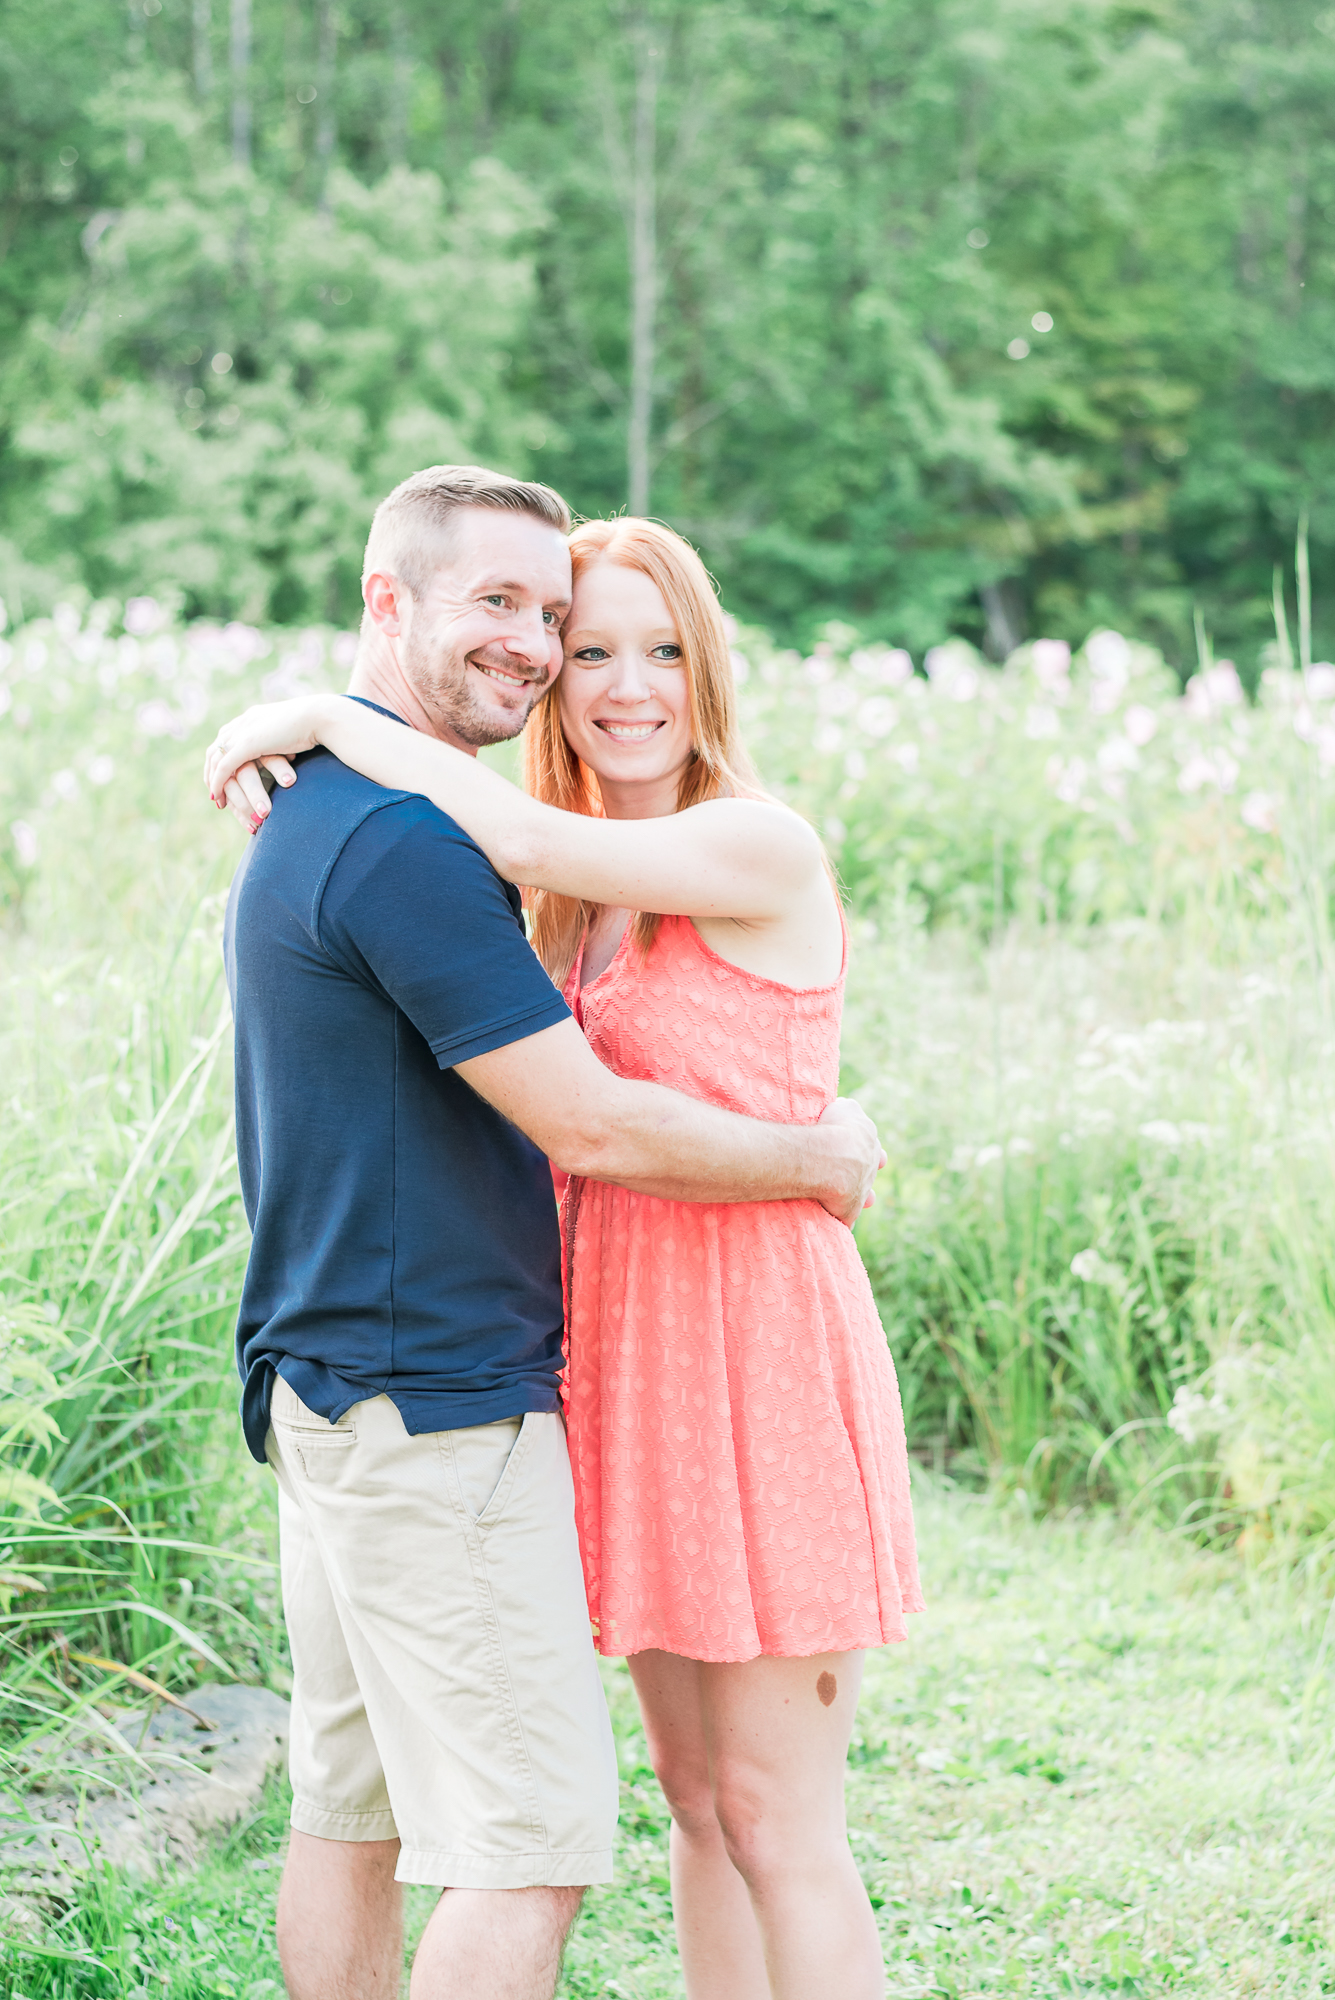 AB Favorites_Katy+Brian_Engagement Session_Brecksville Reservation_Brecksville_Ohio-13.jpg